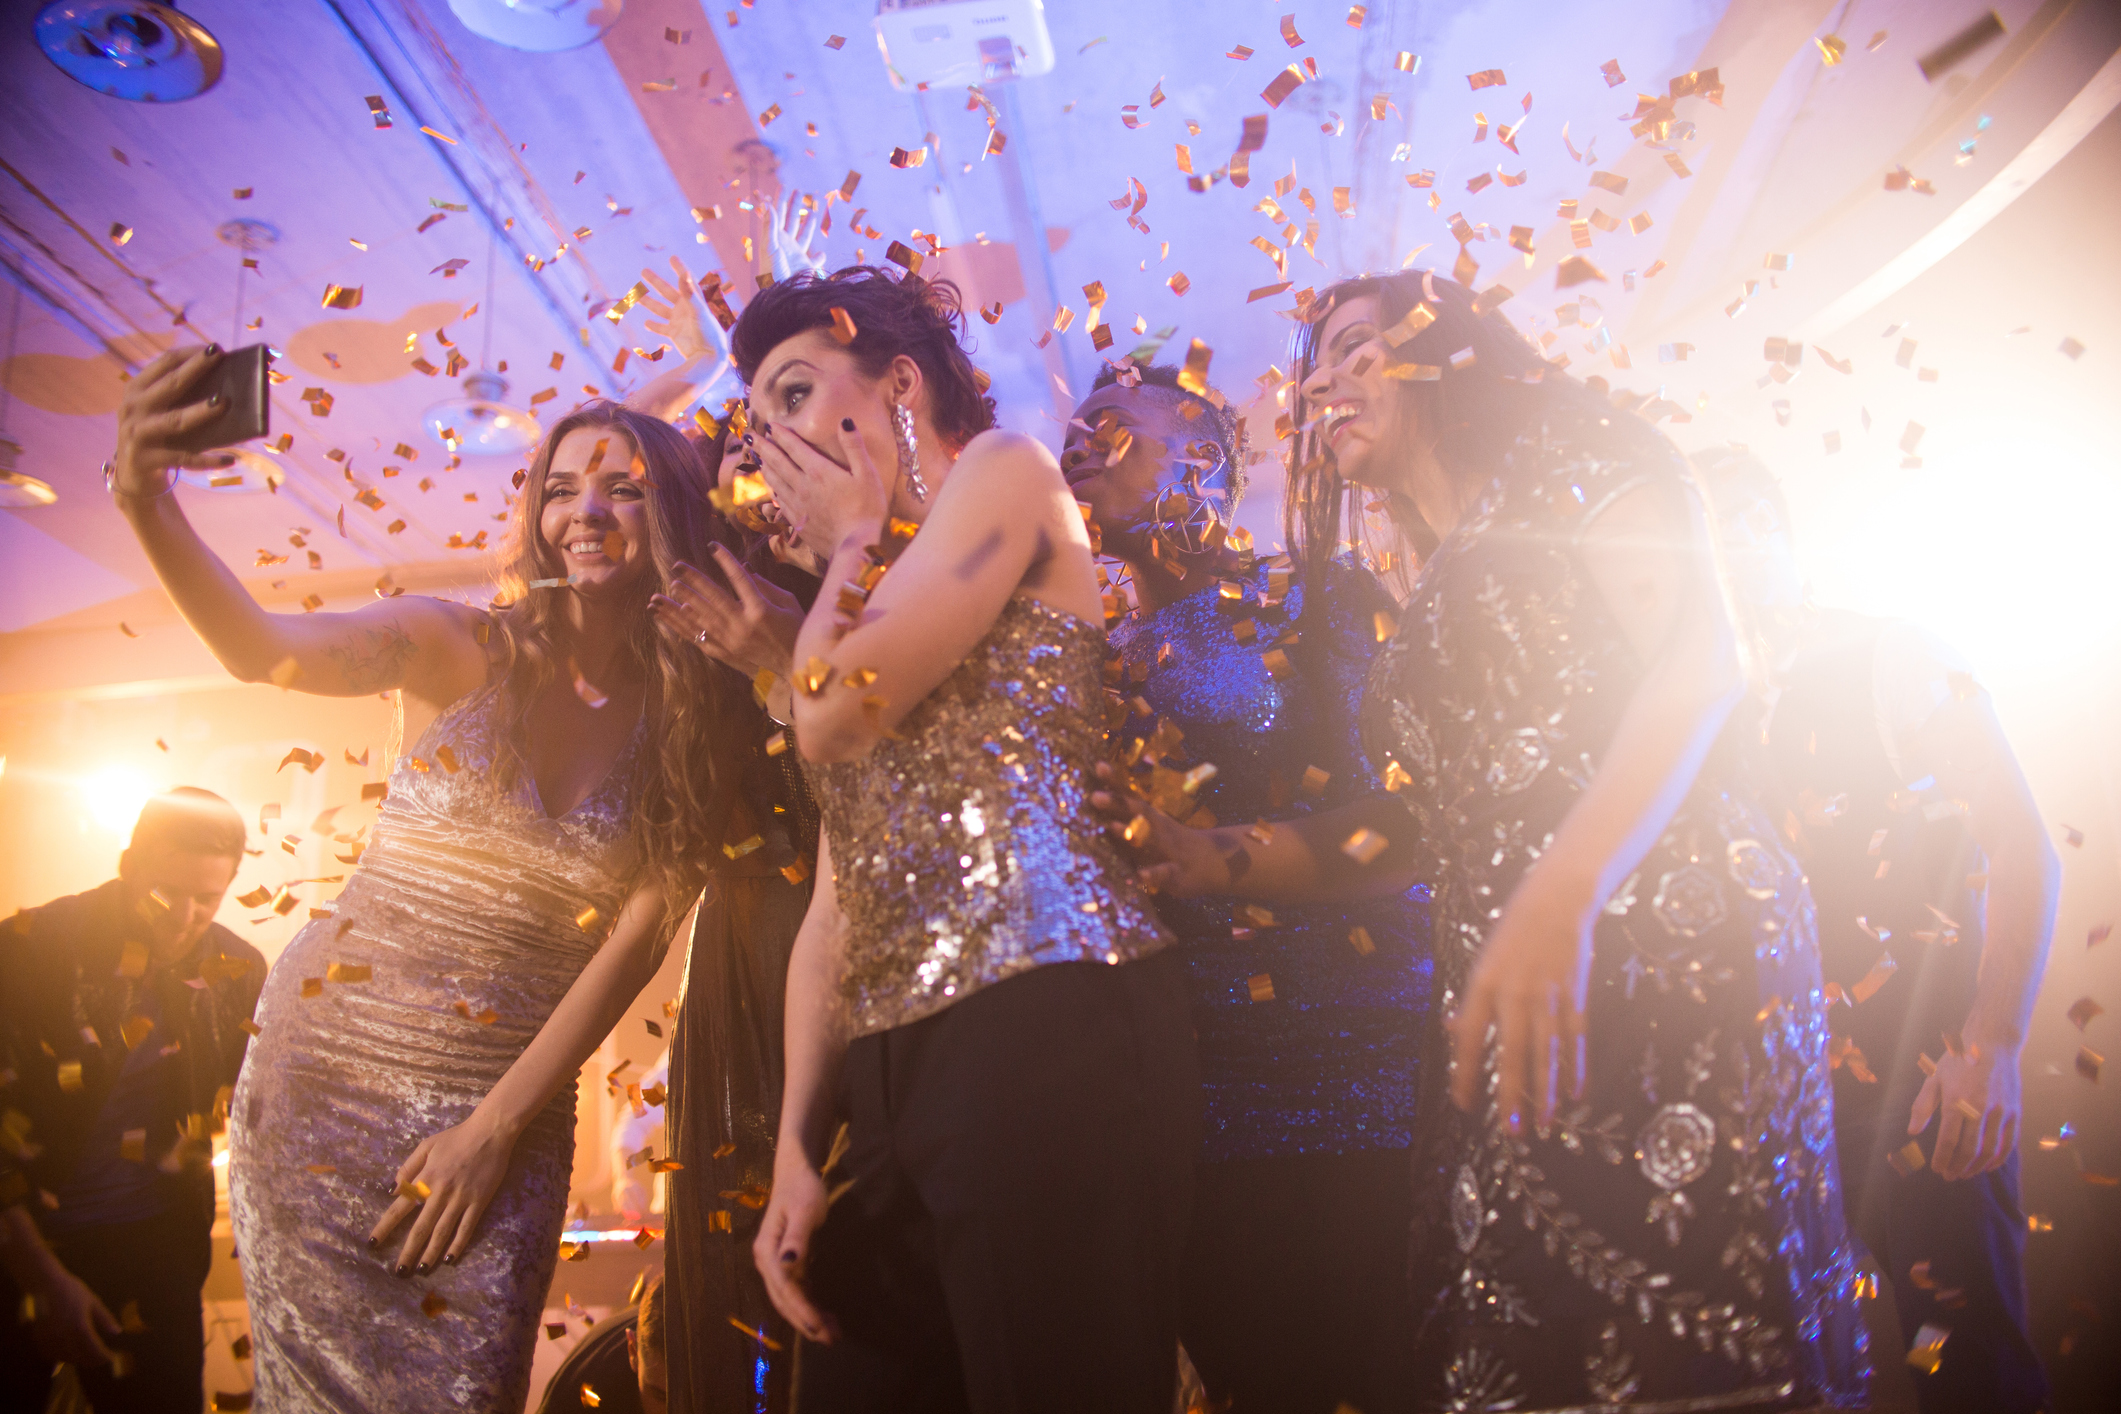 Group  of beautiful young women wearing glittering dresses dancing under golden confetti and taking selfies enjoying raving party in nightclub